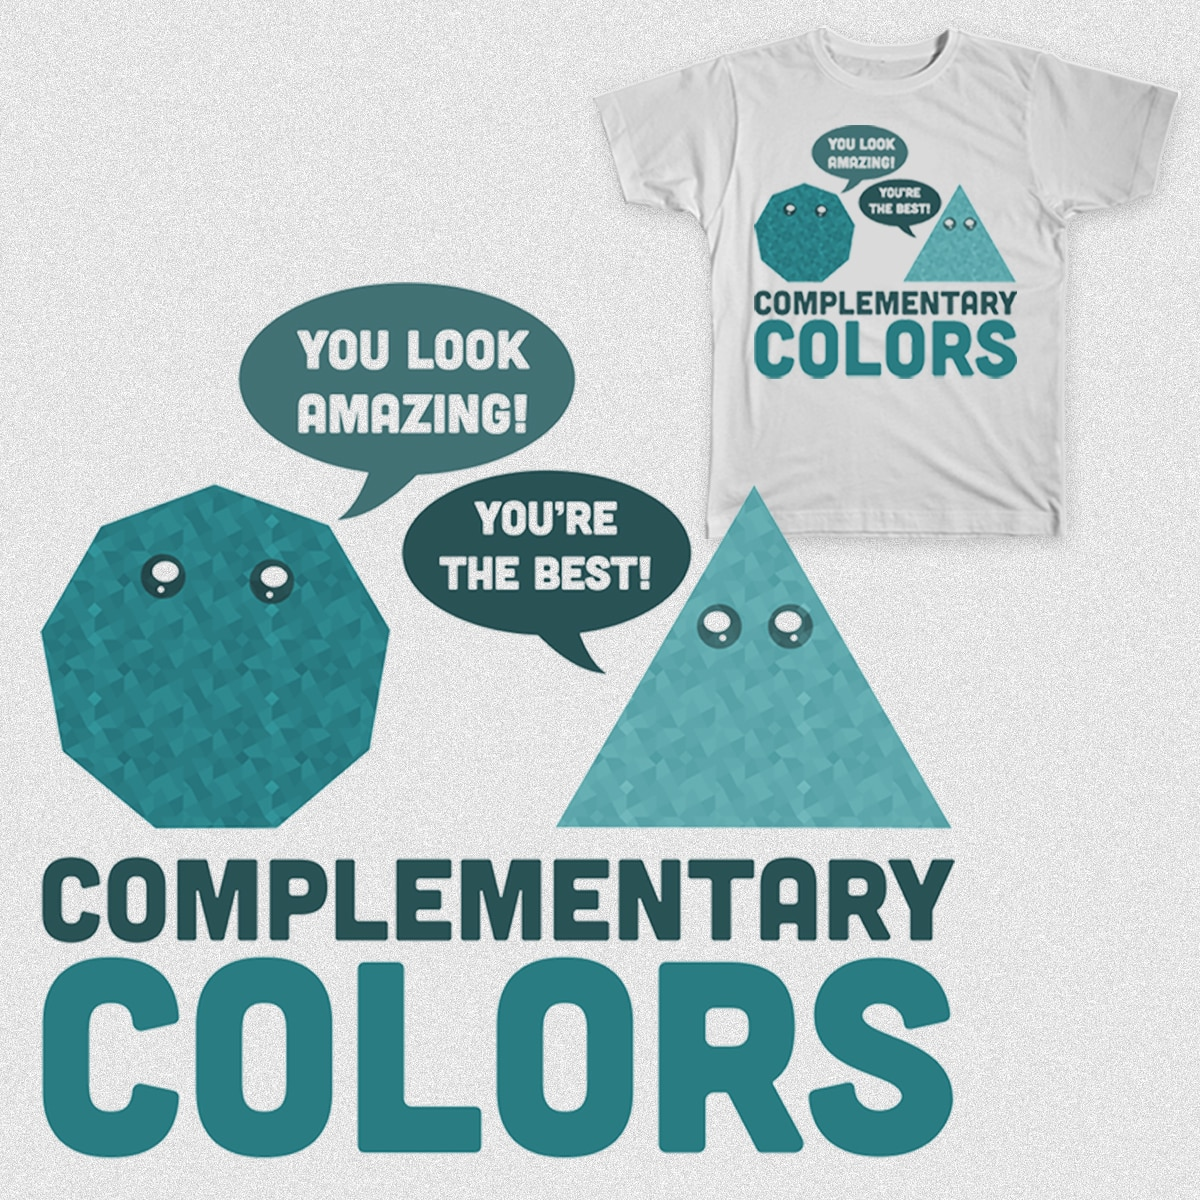 Complementary Colors by topherbanks23 on Threadless